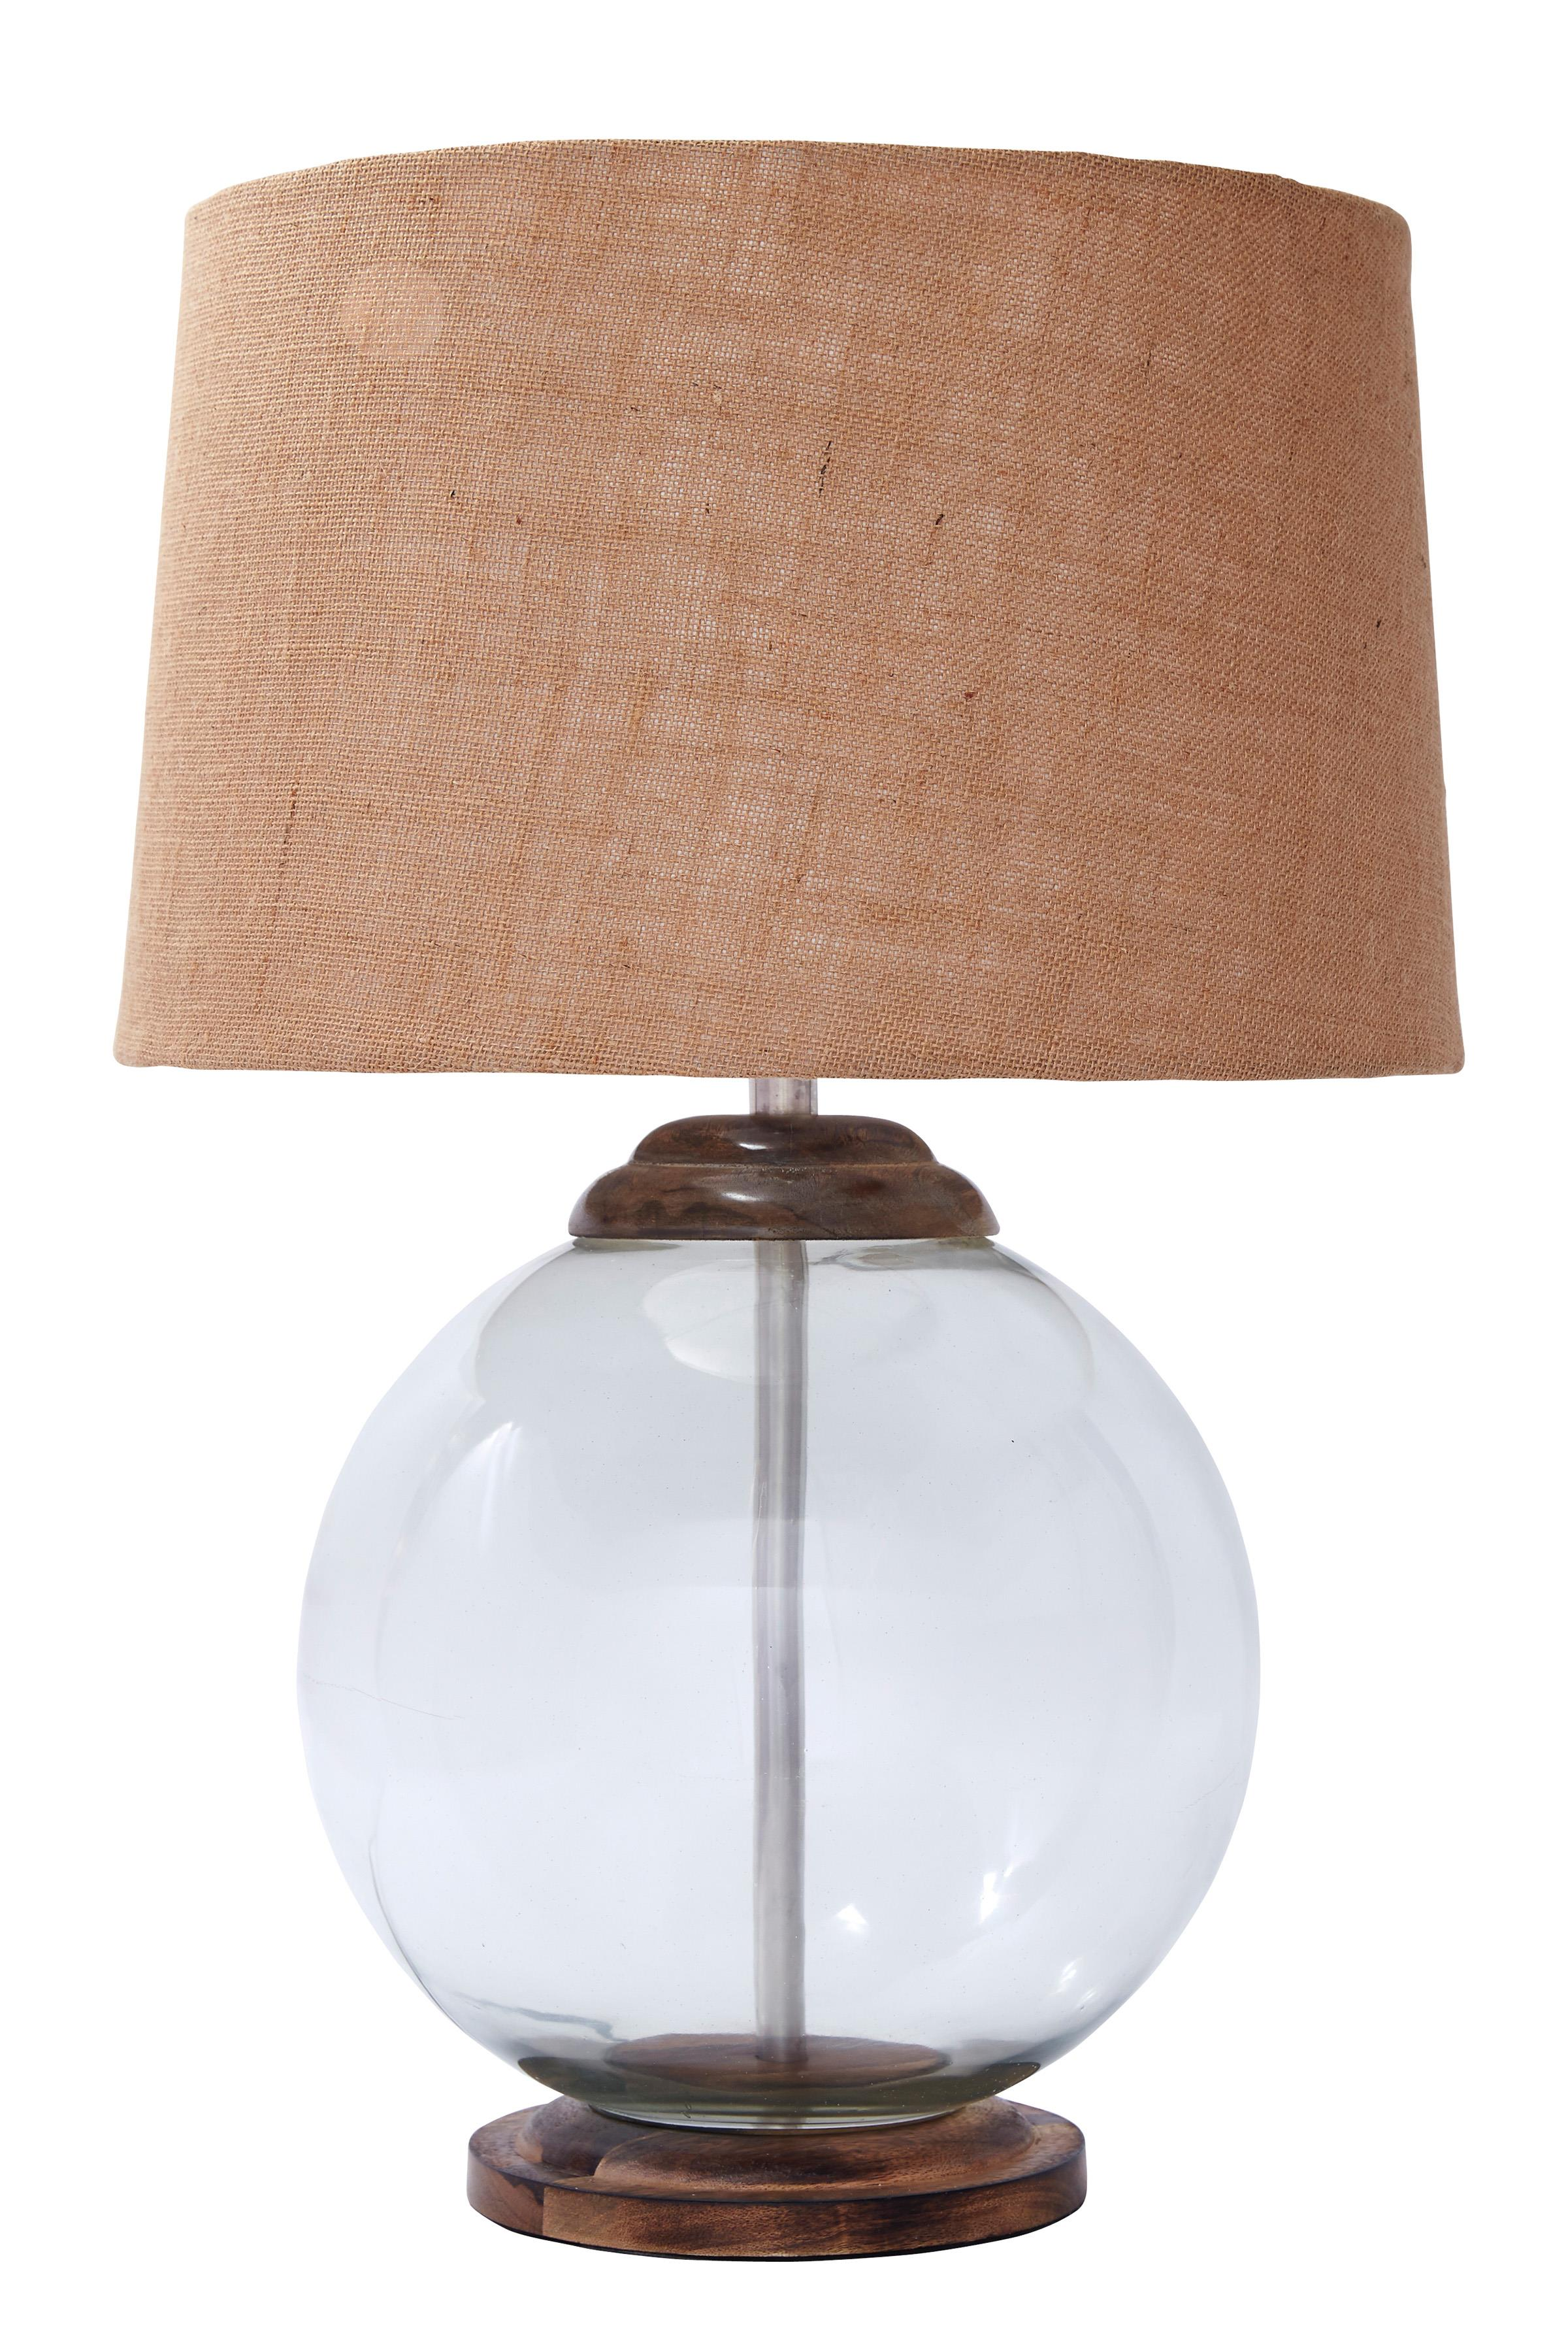 Signature Design by Ashley Lamps - Vintage Style Shandel Transparent Glass Table Lamp - Item Number: L430004